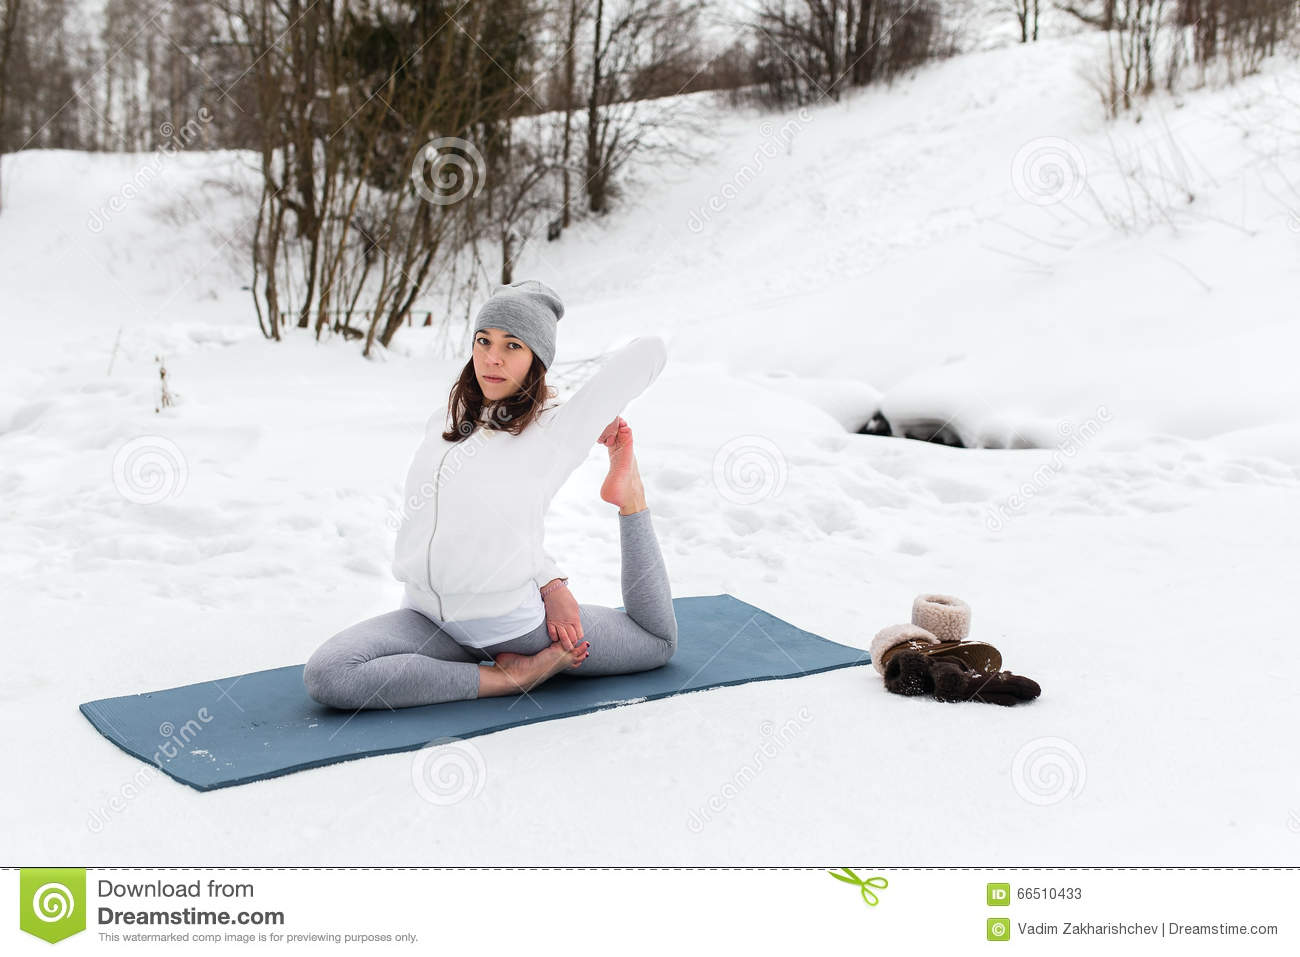 https://thumbs.dreamstime.com/z/winter-yoga-session-beautiful-place-young-athletic-woman-doing-woods-girl-engaged-fitness-park-66510433.jpg